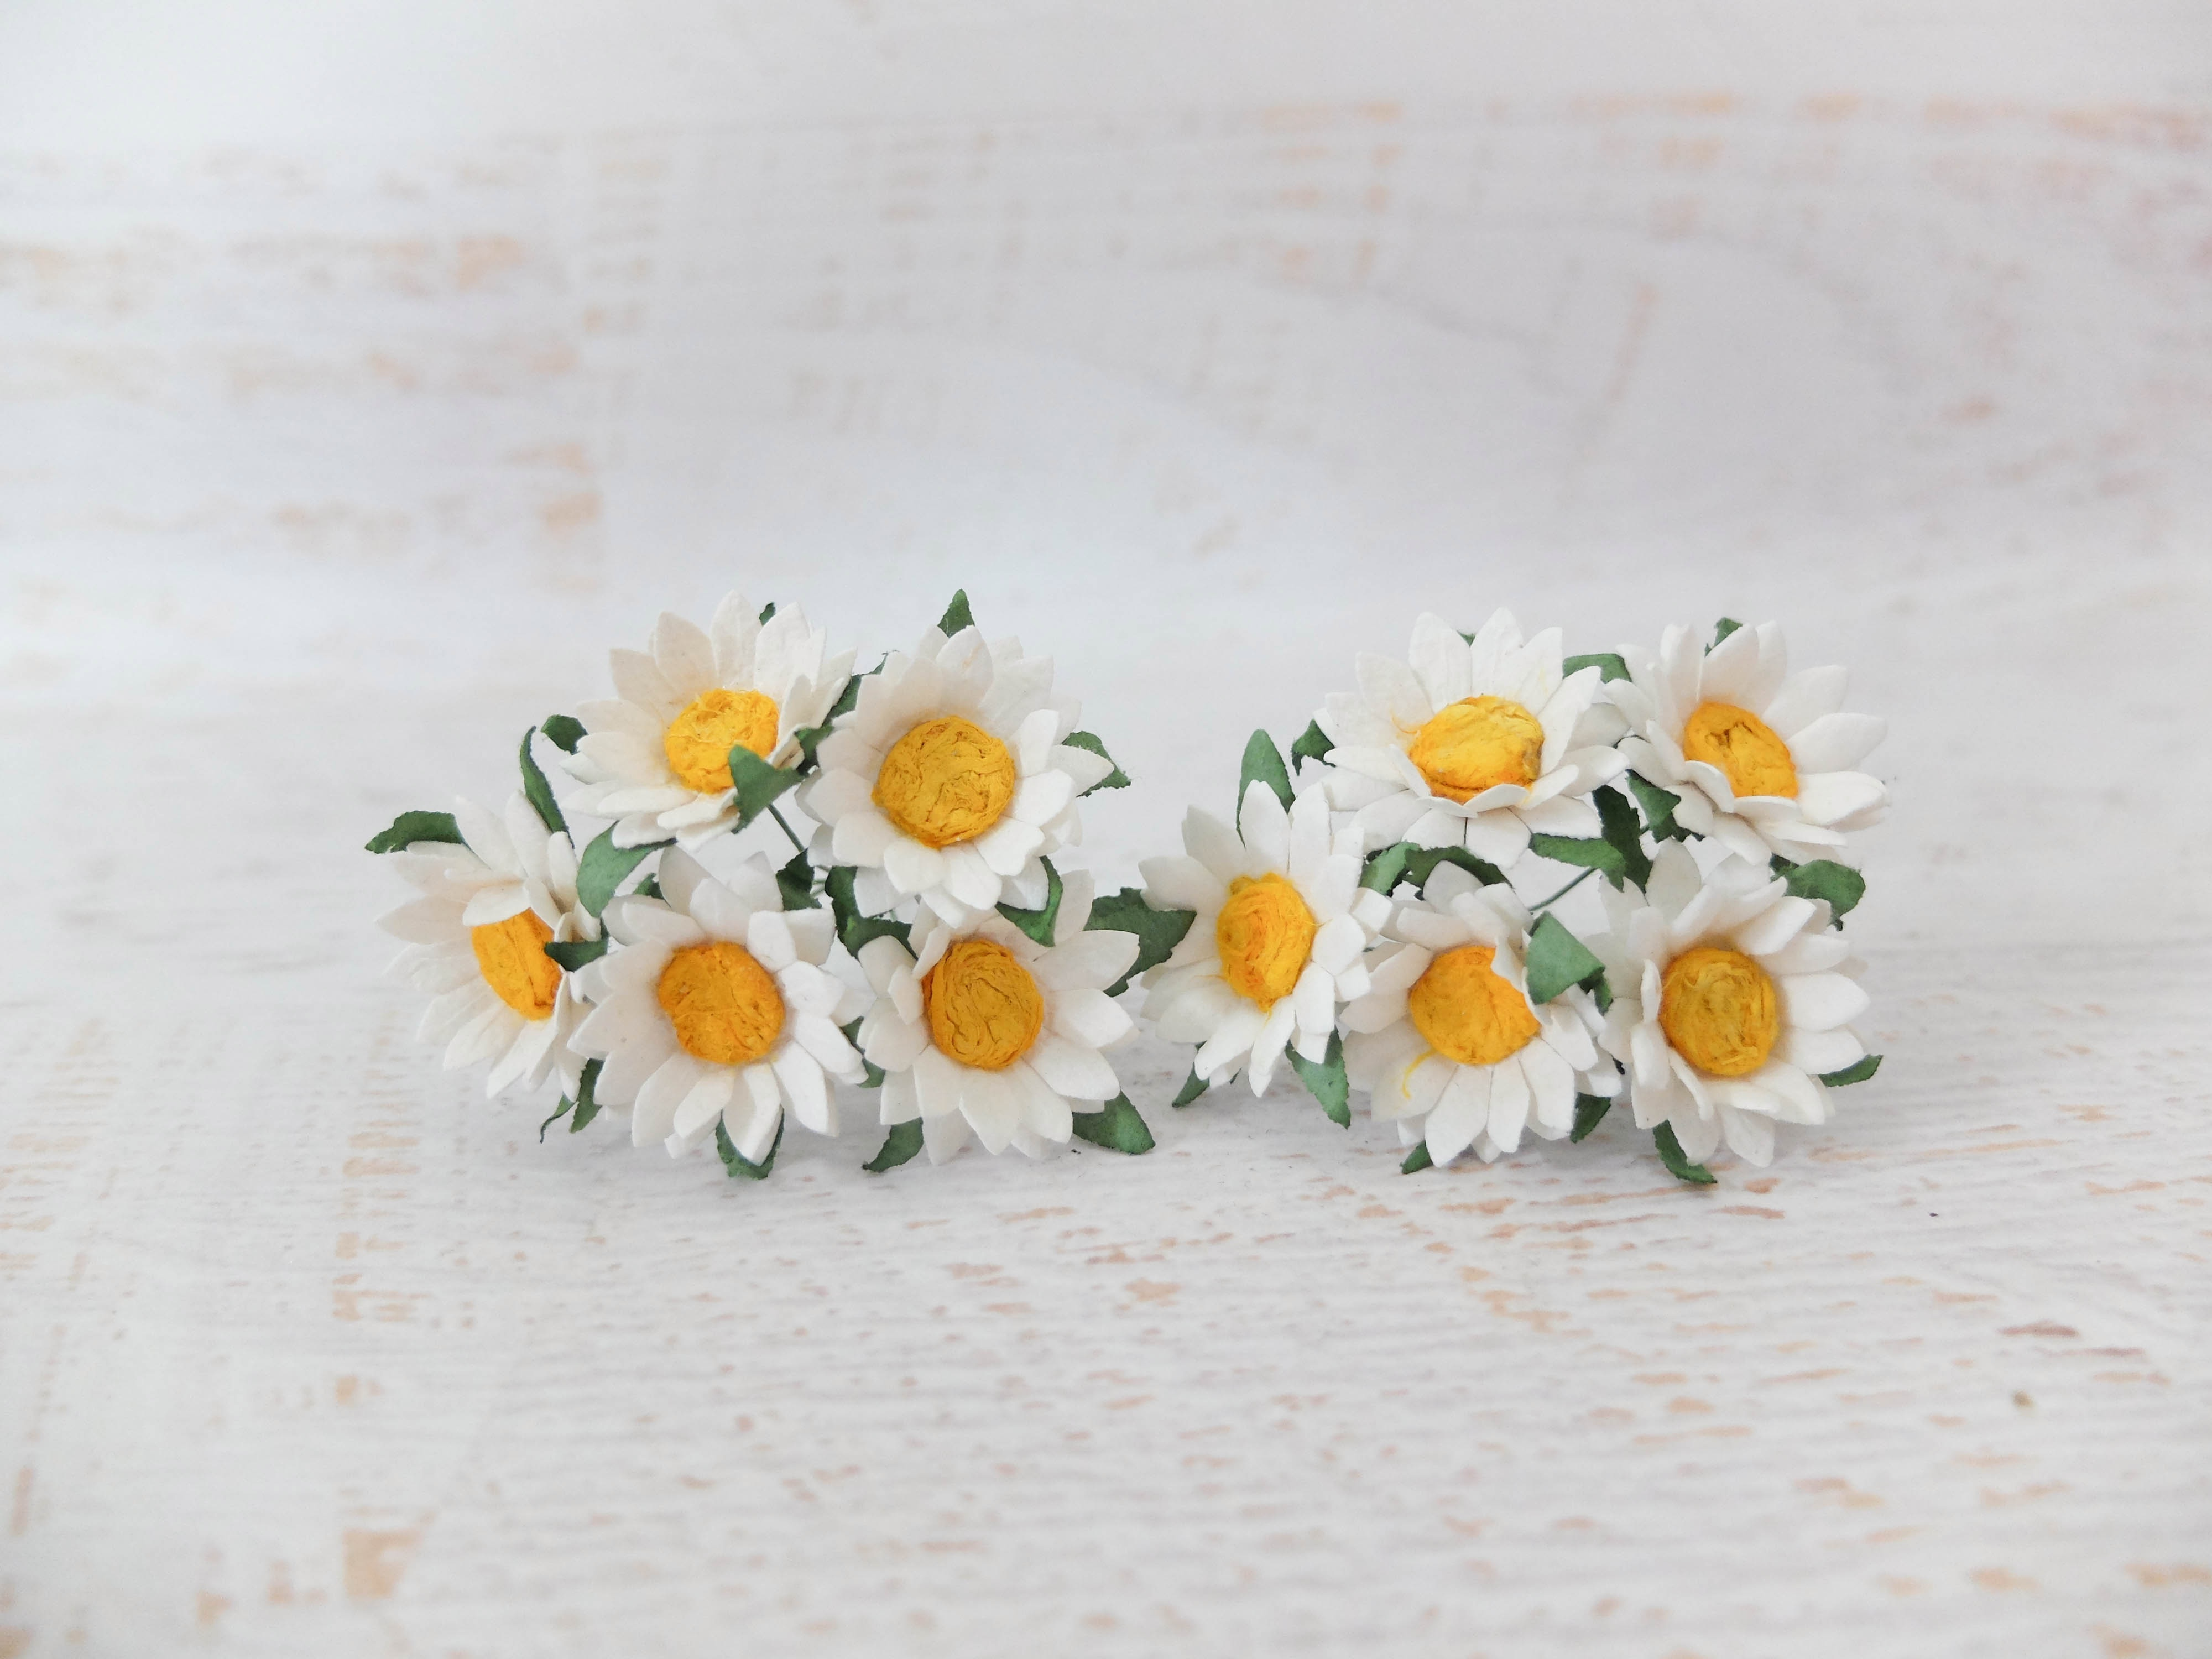 3 Cm Paper White Daisies 50 Daisies Mulberry Paper Flowers With